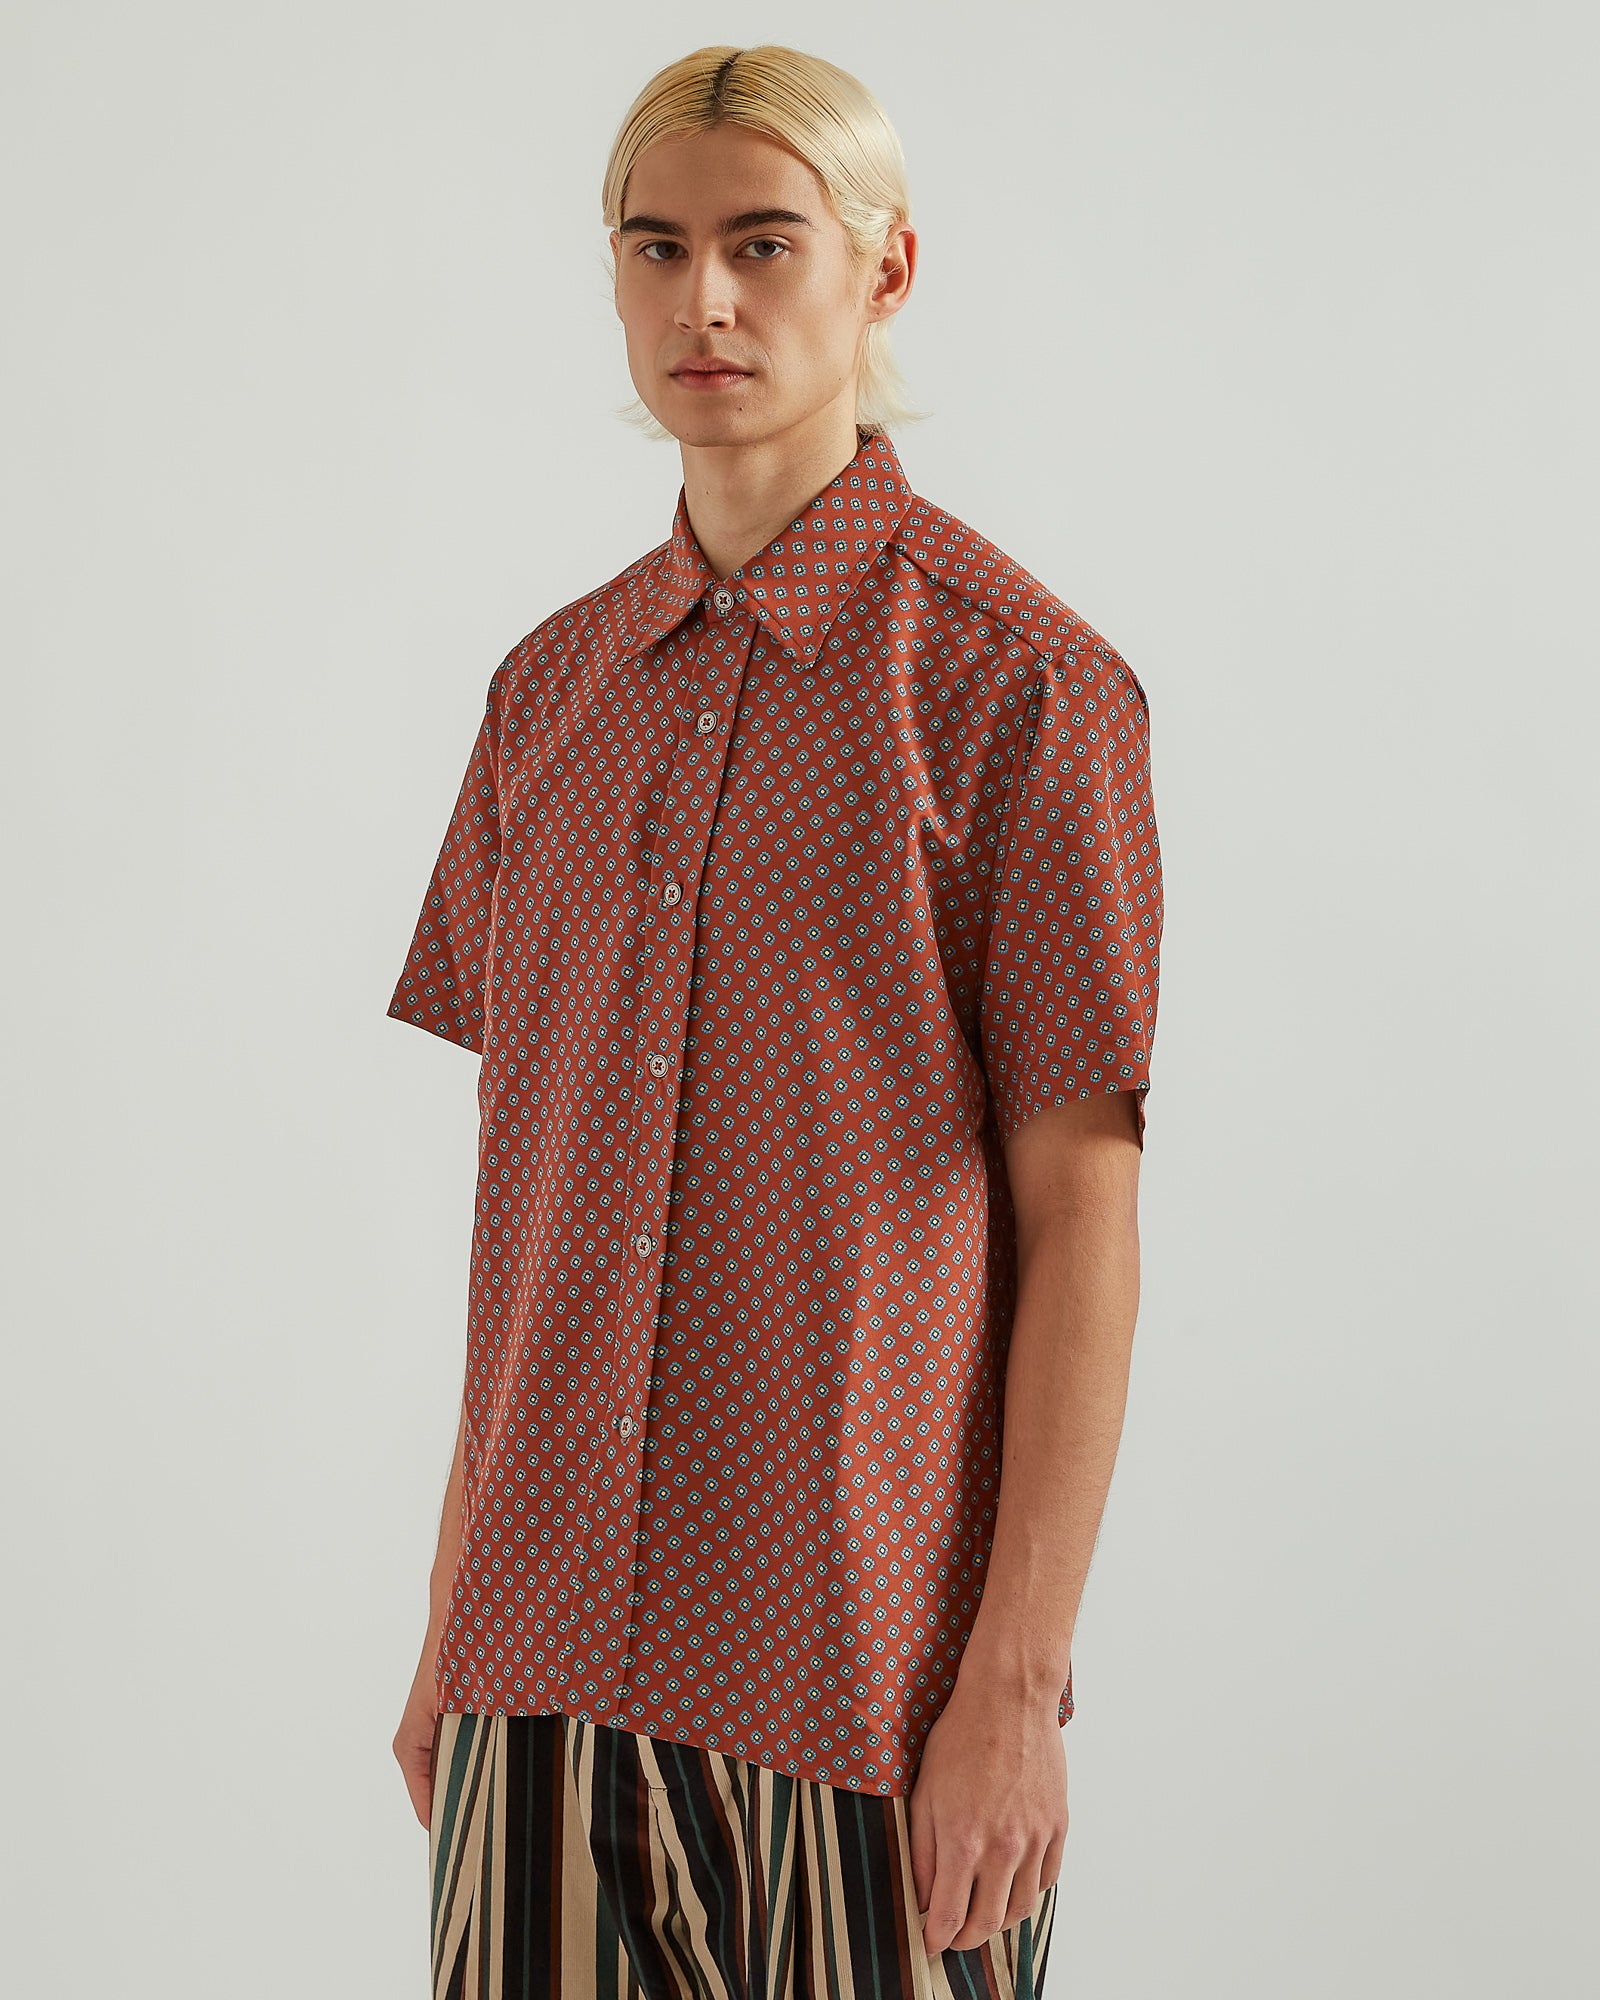 Orchard Shirt in Brown